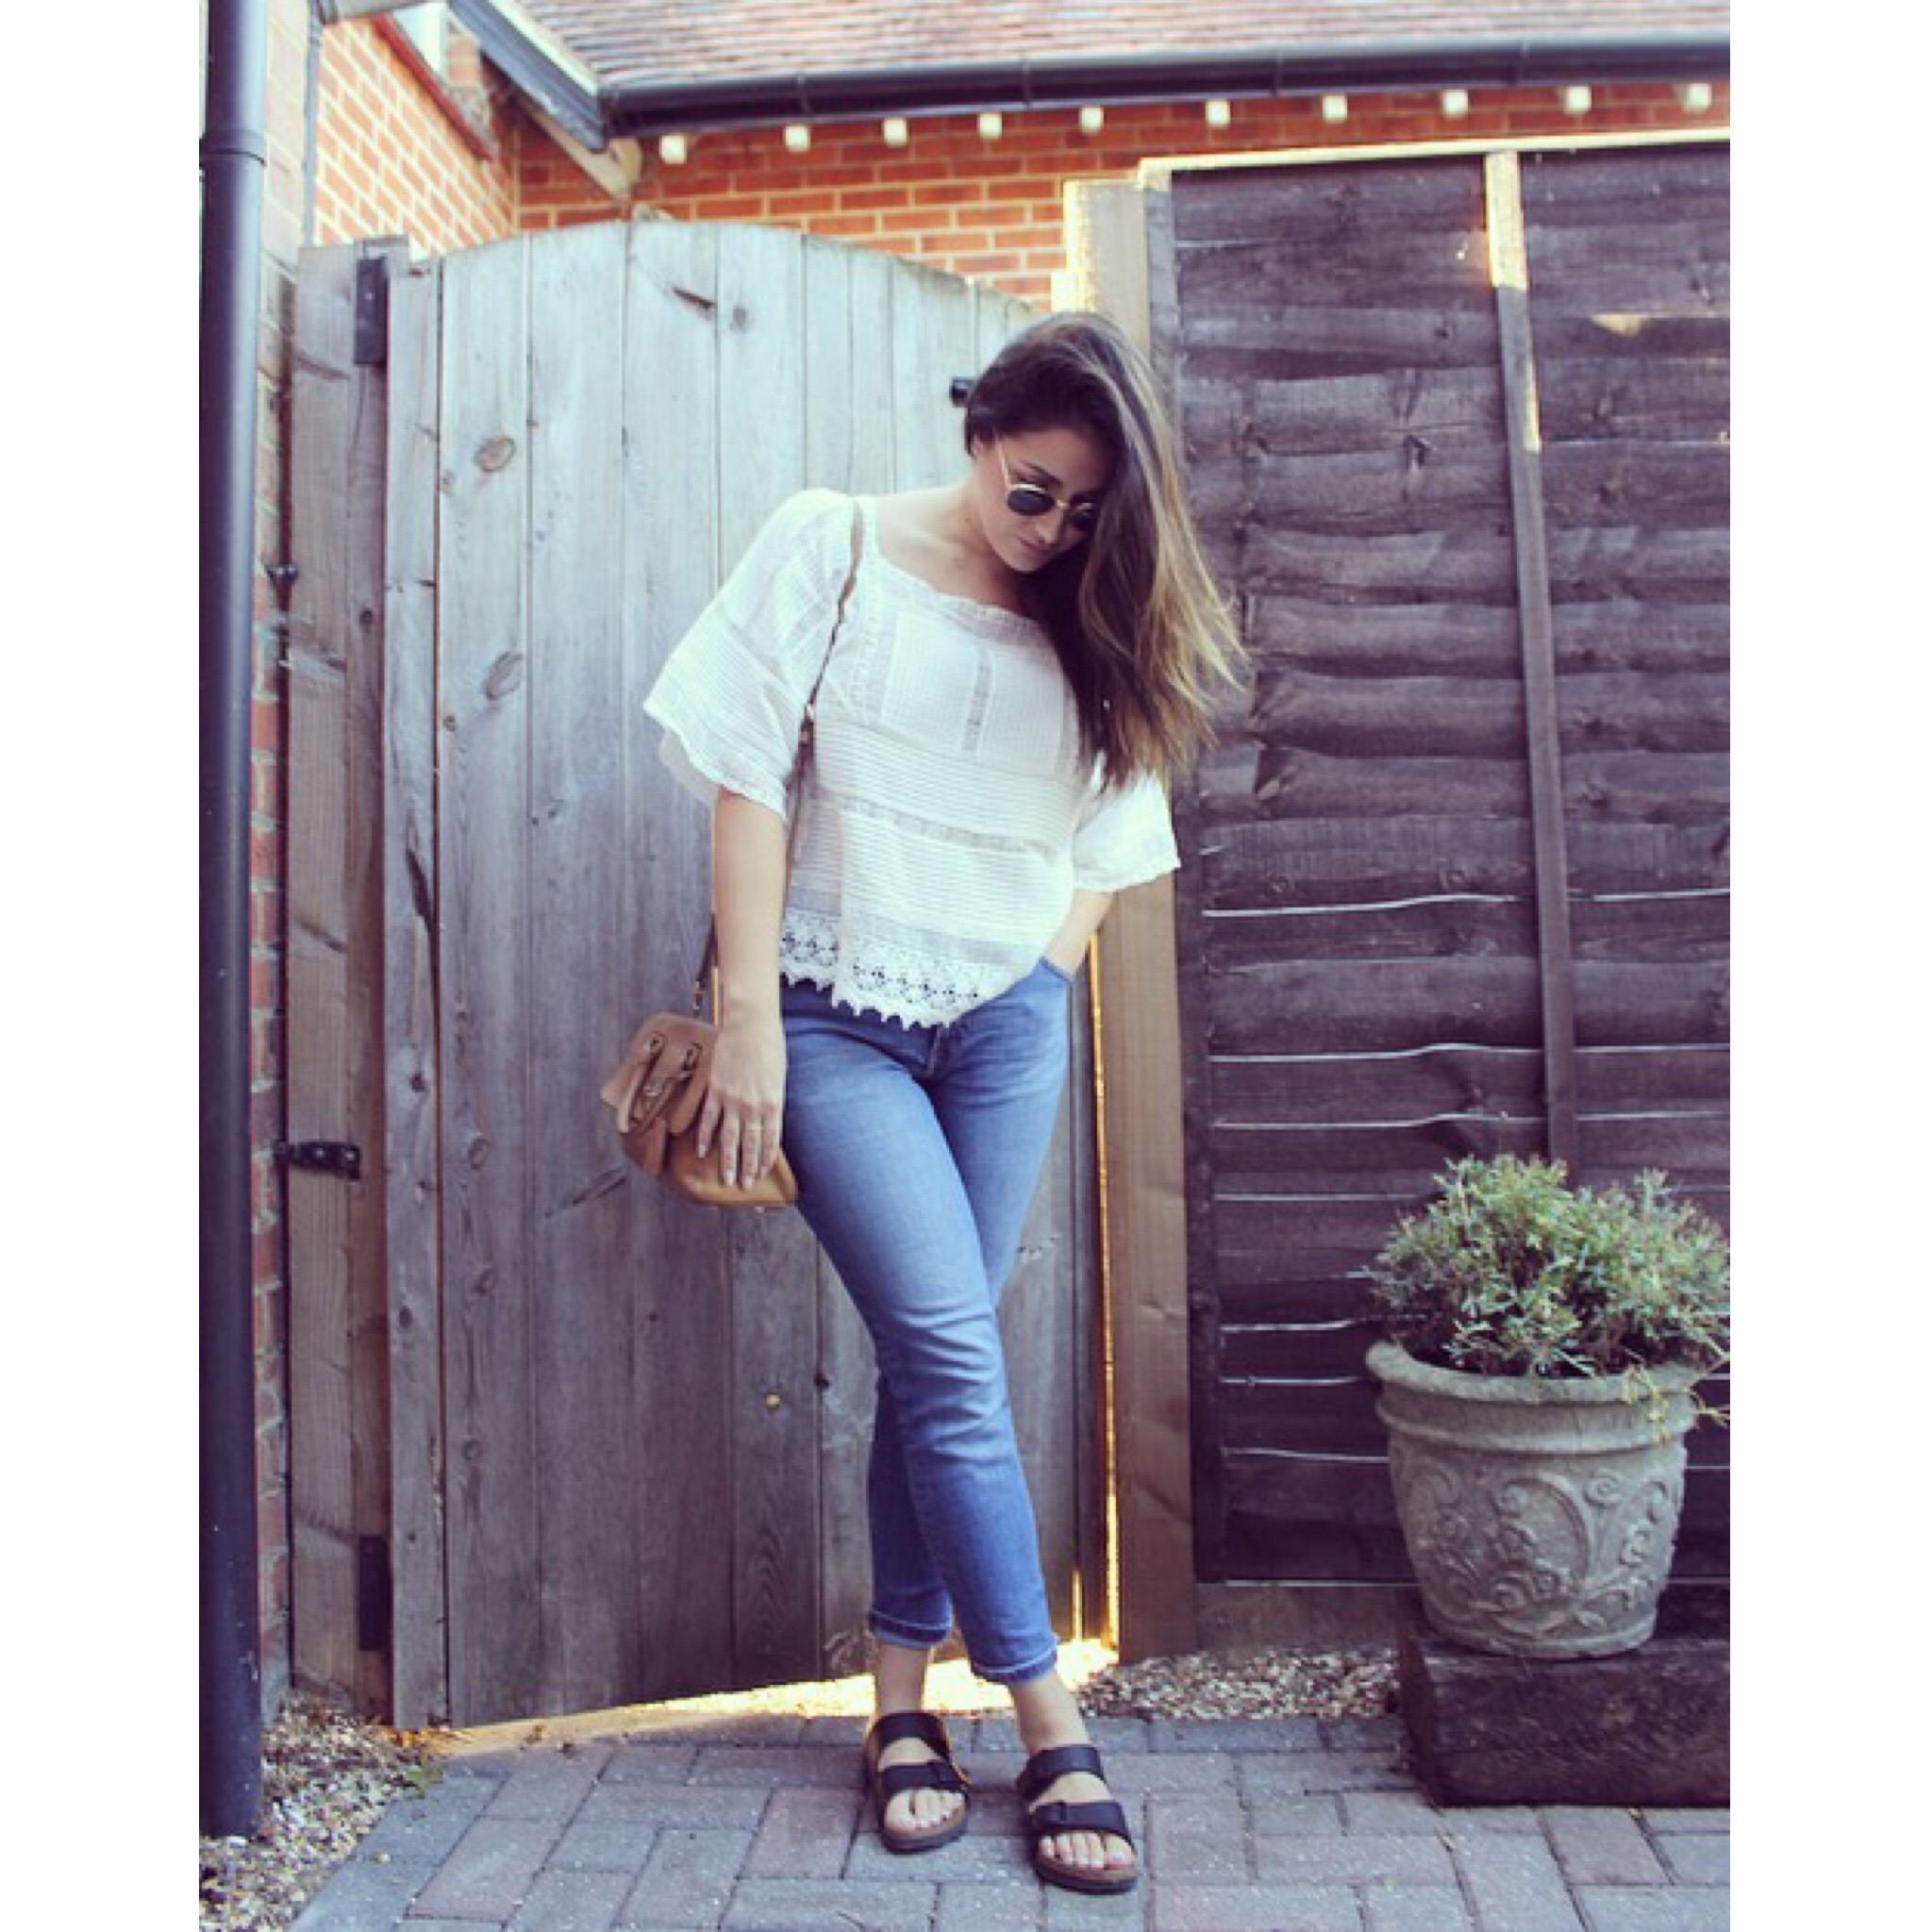 Top - Zara  Jeans - H&M  Shoes - Birkenstock  Bag - Mulberry  Sunglasses - Rayban